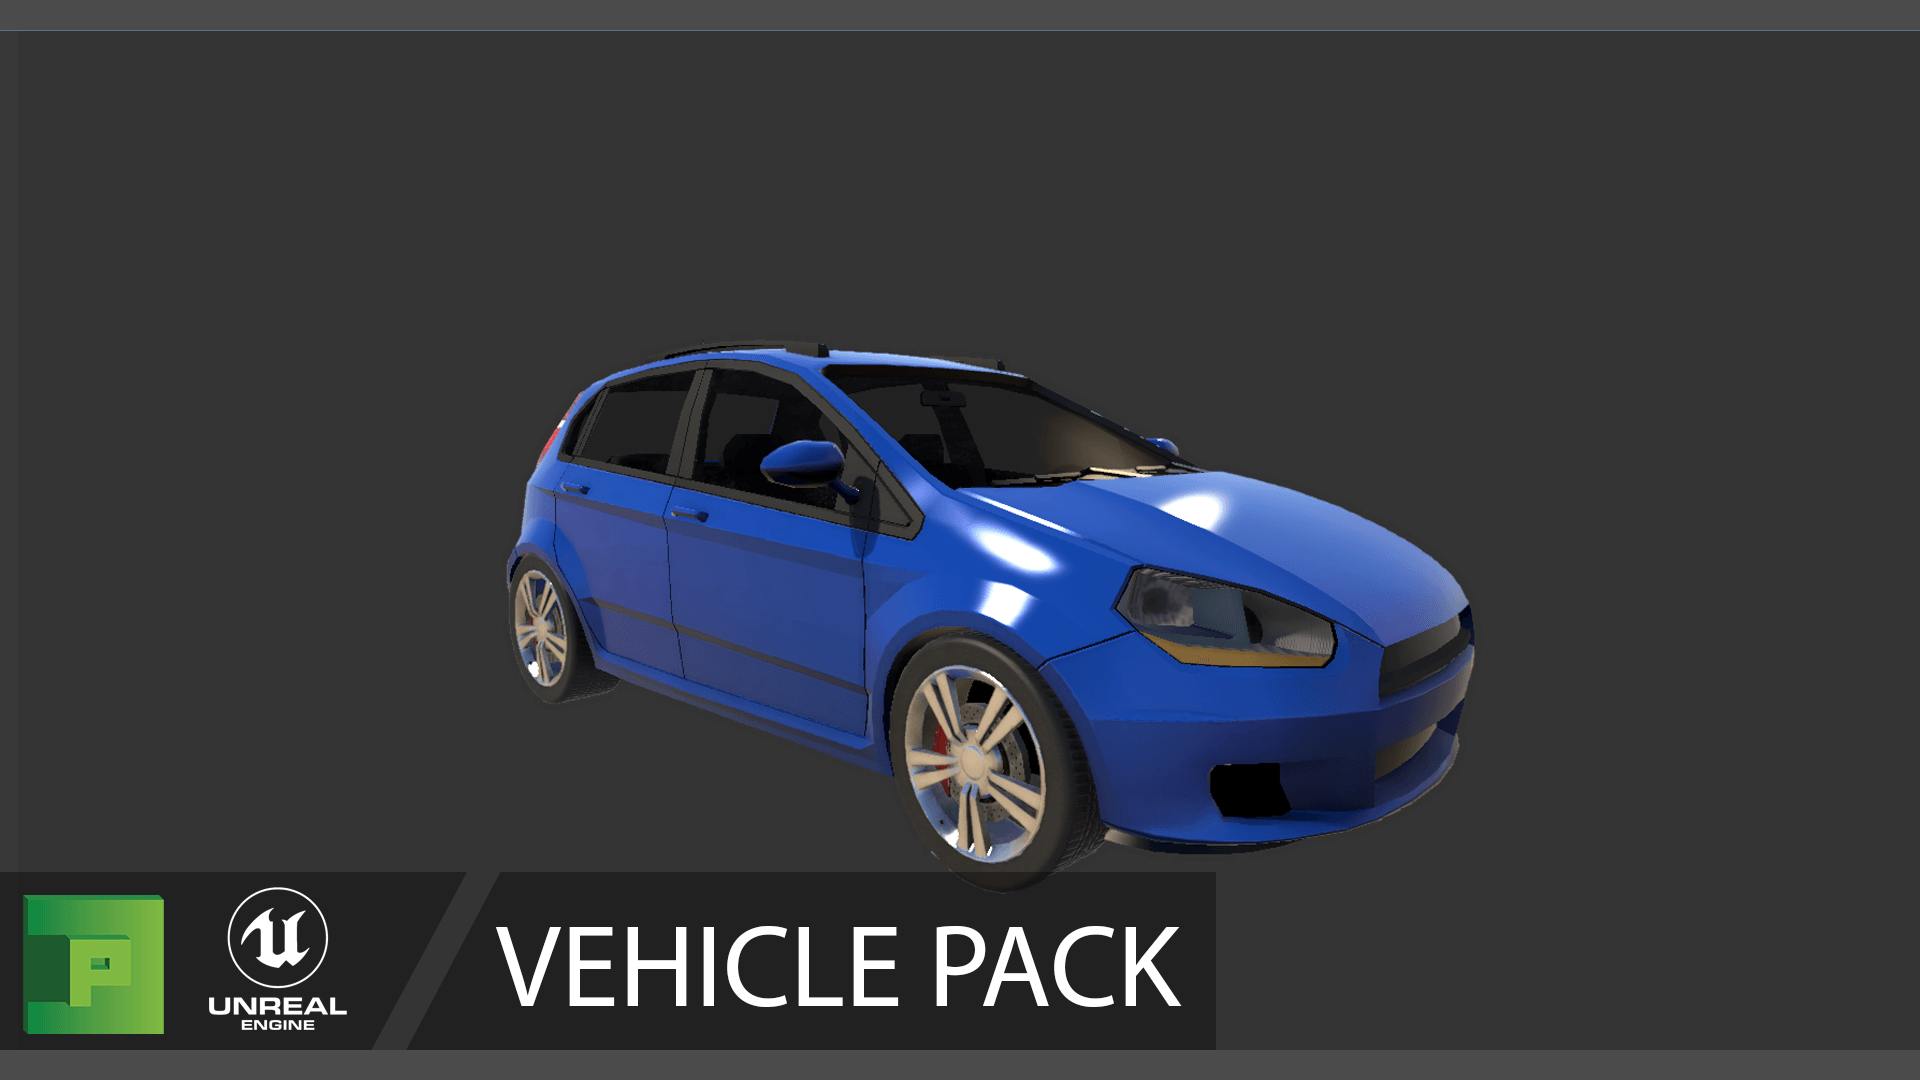 VehiclePack_11